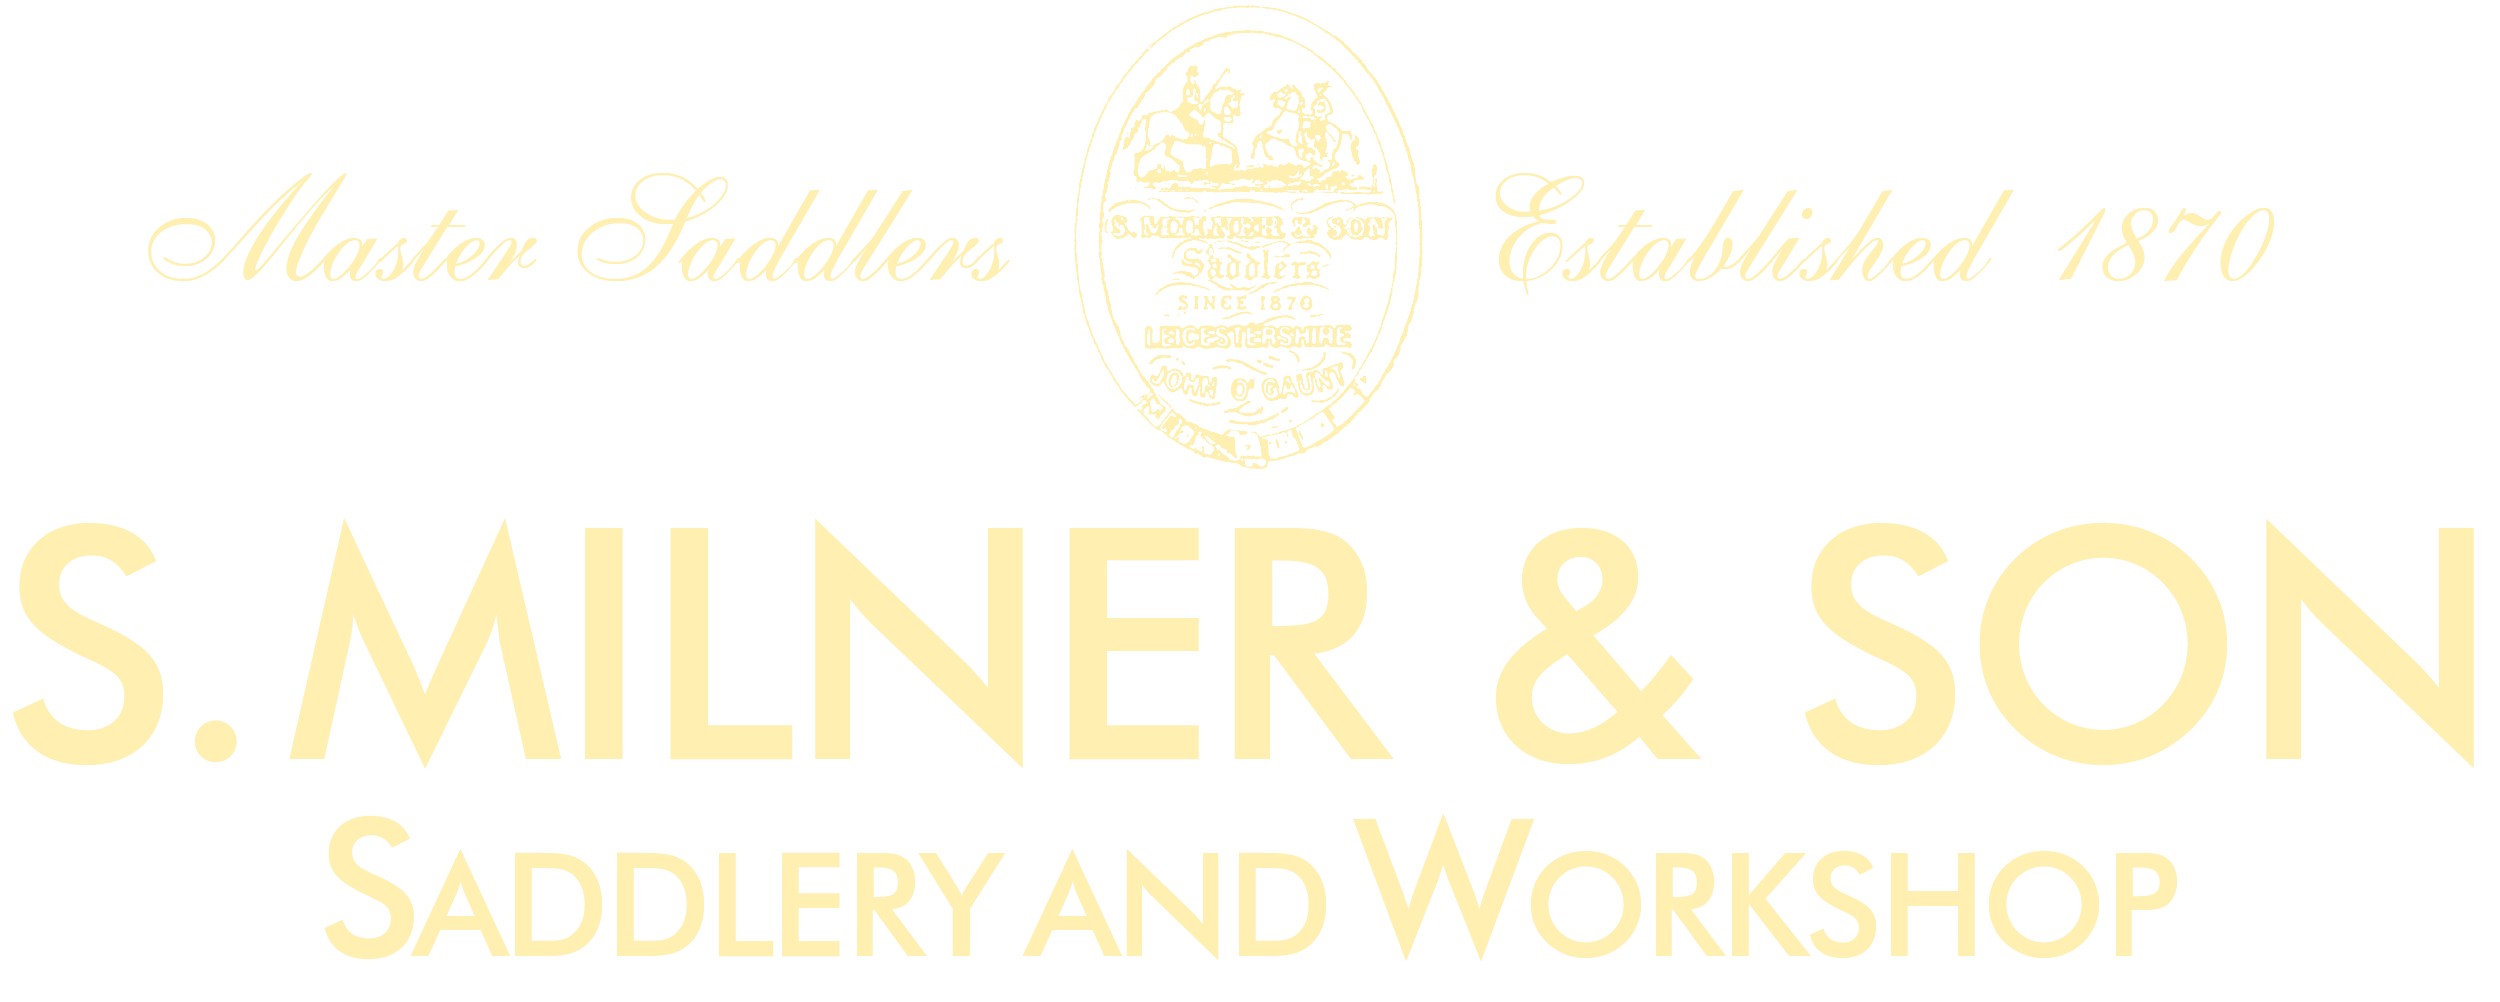 S. Milner & Son Saddlers Logo